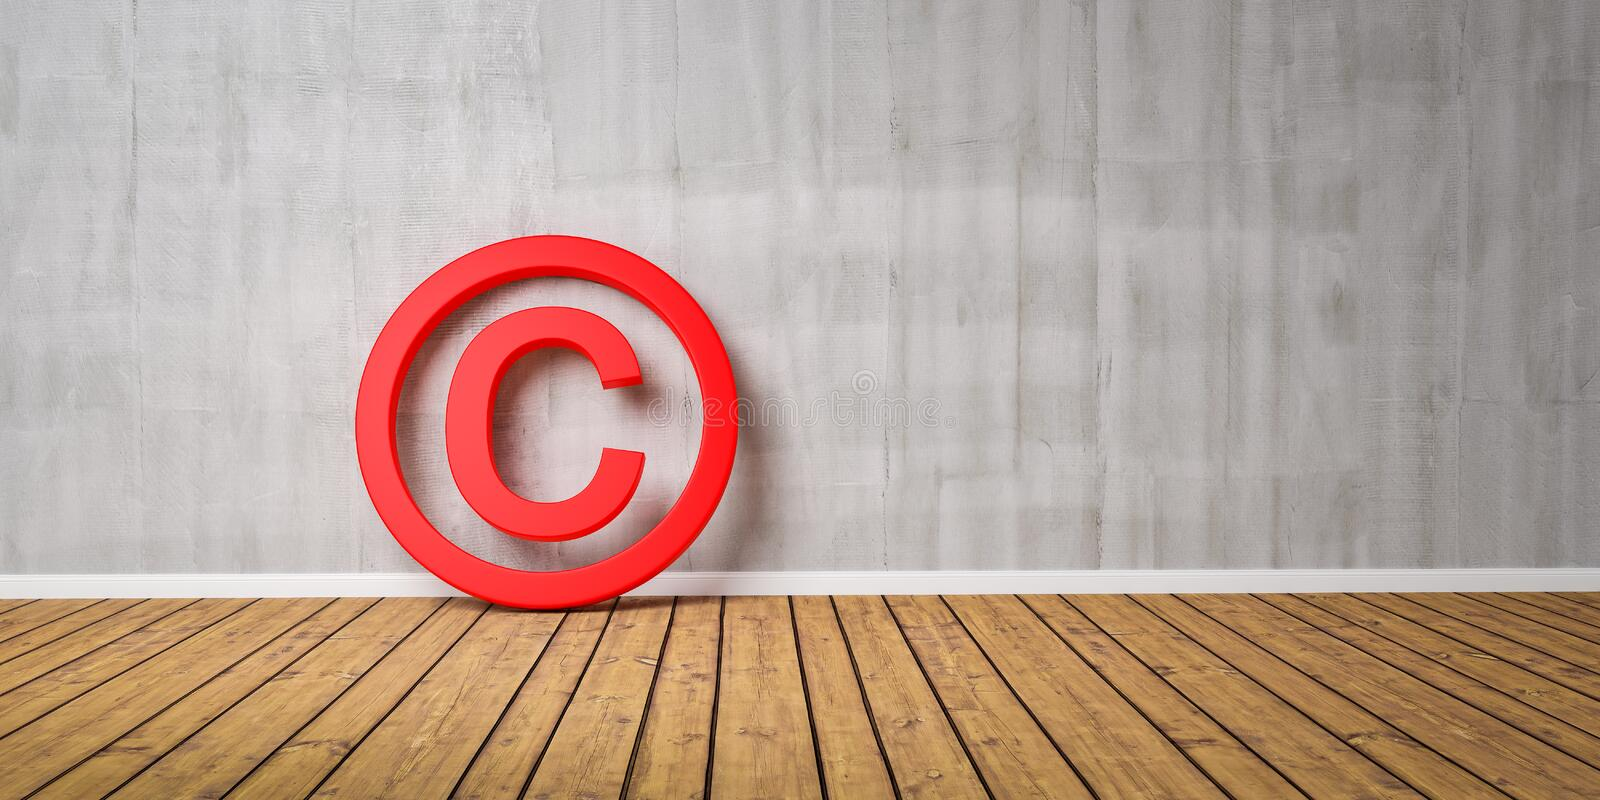 Red Copyright Symbol on Wodden Floor lean on Gray Grunge Wall with Copy Space - 3D-Illustration royalty free illustration